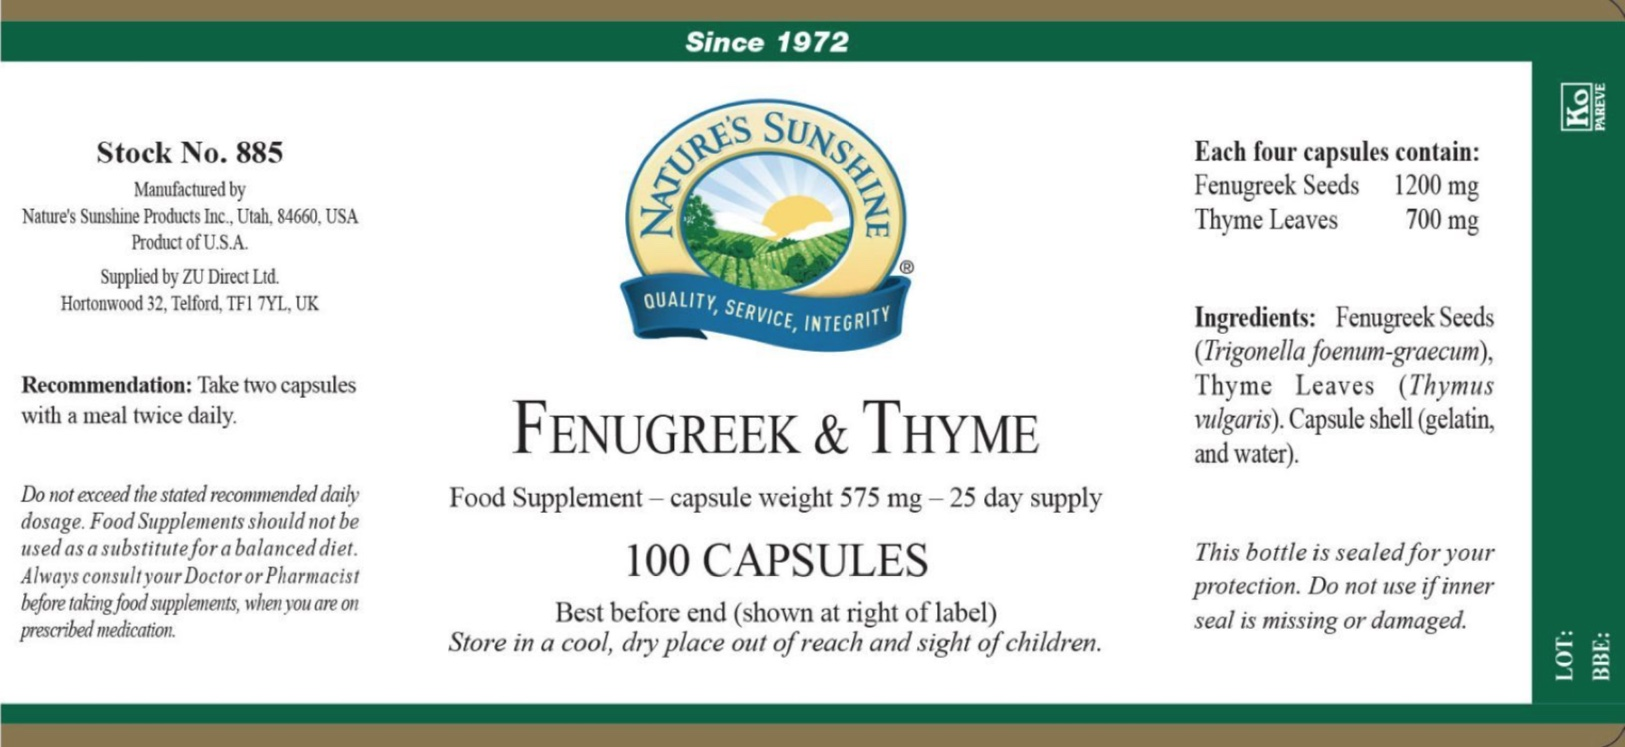 Fenugreek & Thyme - Label